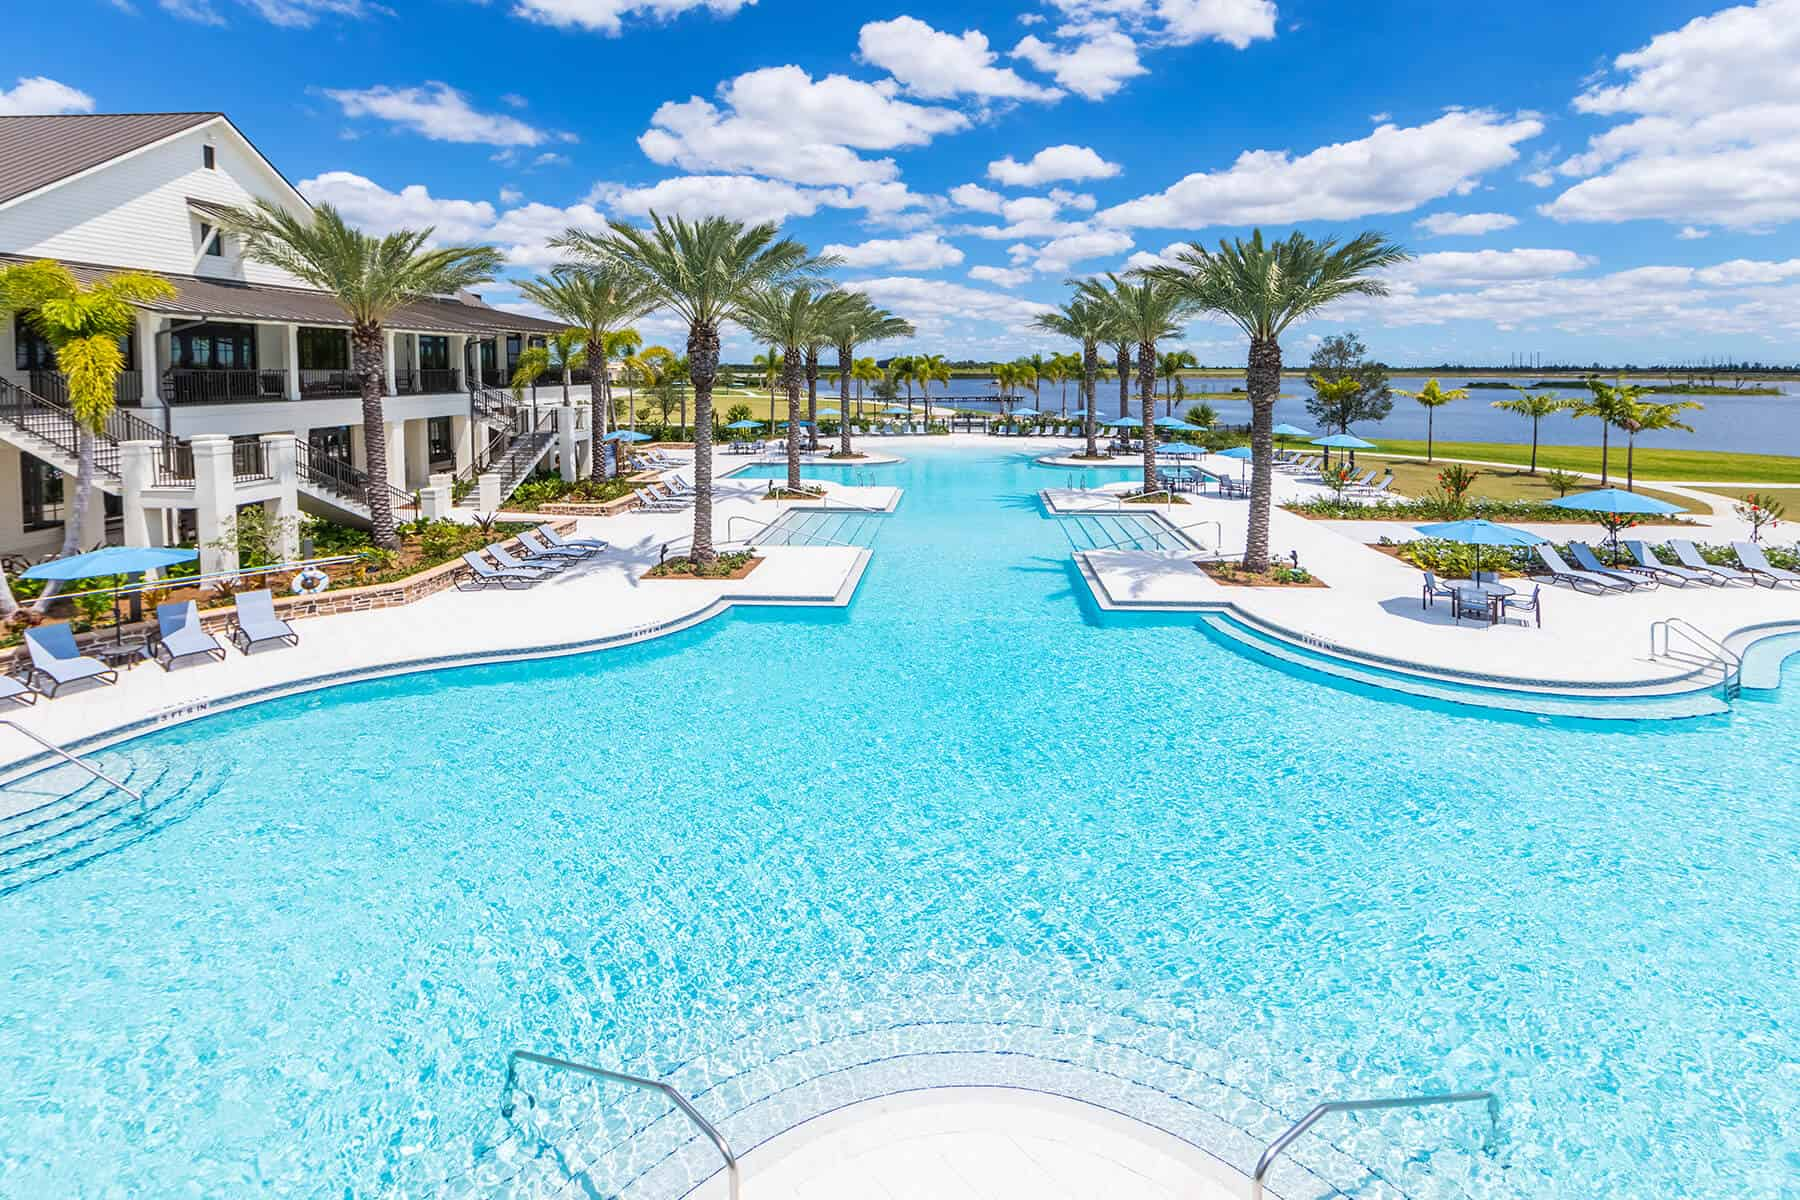 arden-new-homes-for-sale-palm-beach-county-fl-7386